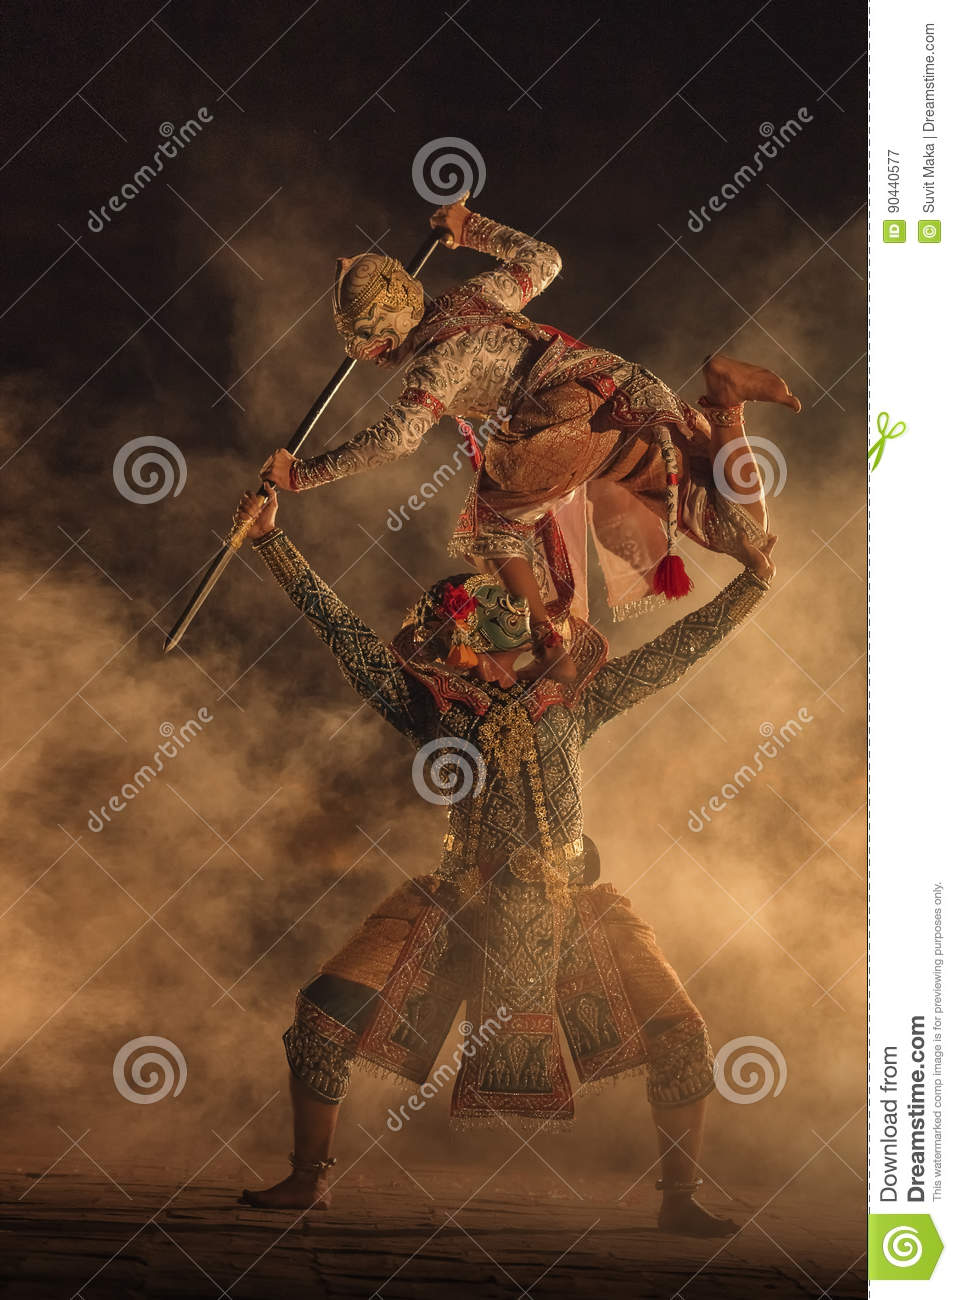 Pantomime Khon stock image  Image of khon, indonesia - 90440577